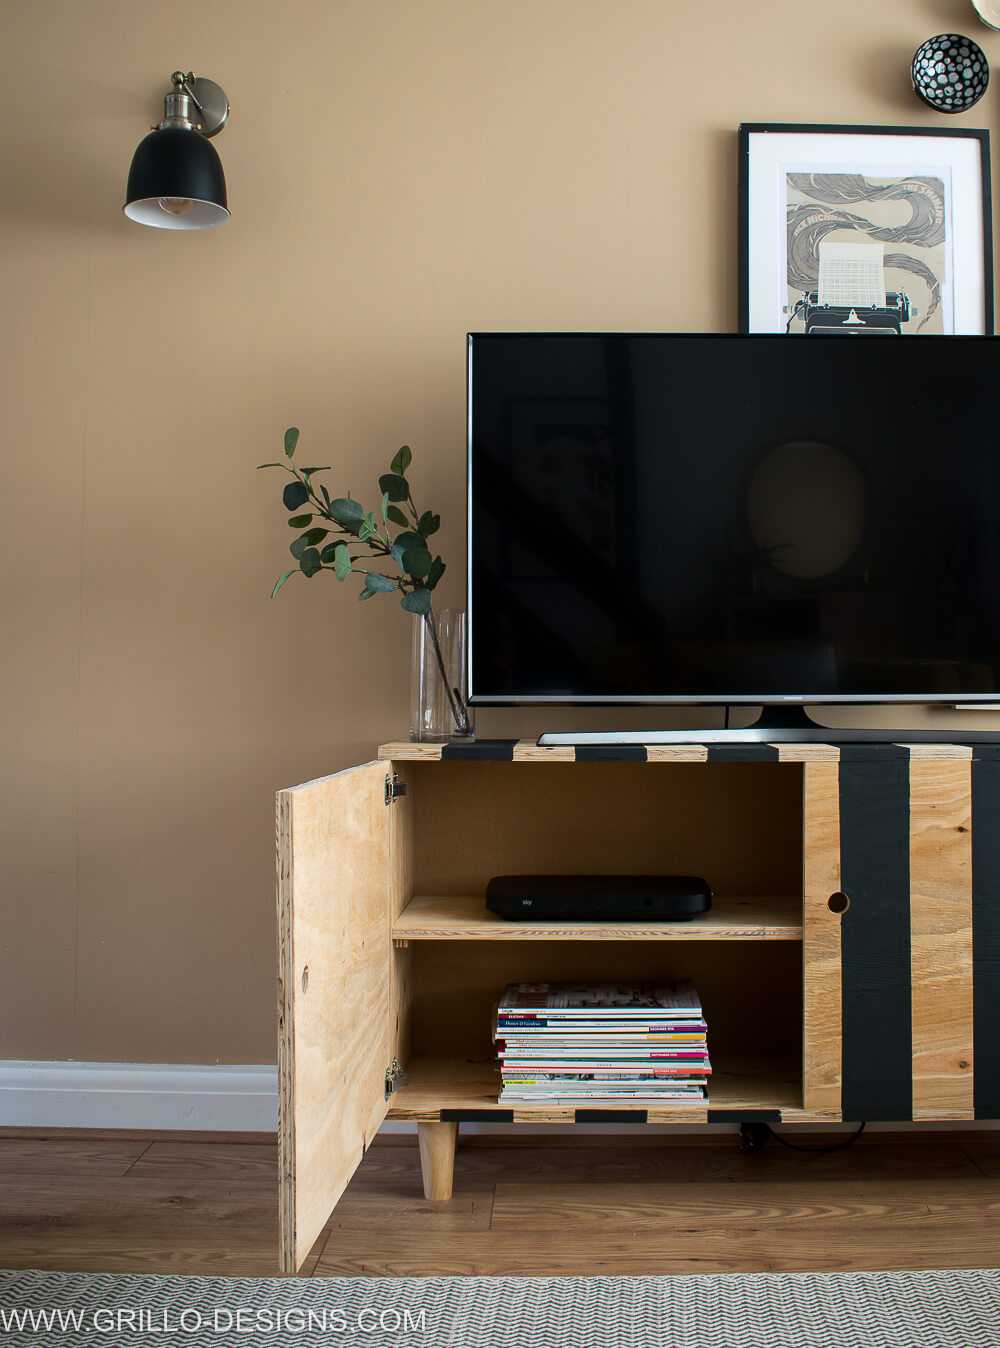 How to build a Diy tv stand with doors #diytvstand #tvstandideas #tvstandideasforlivingroom #grillodesigns